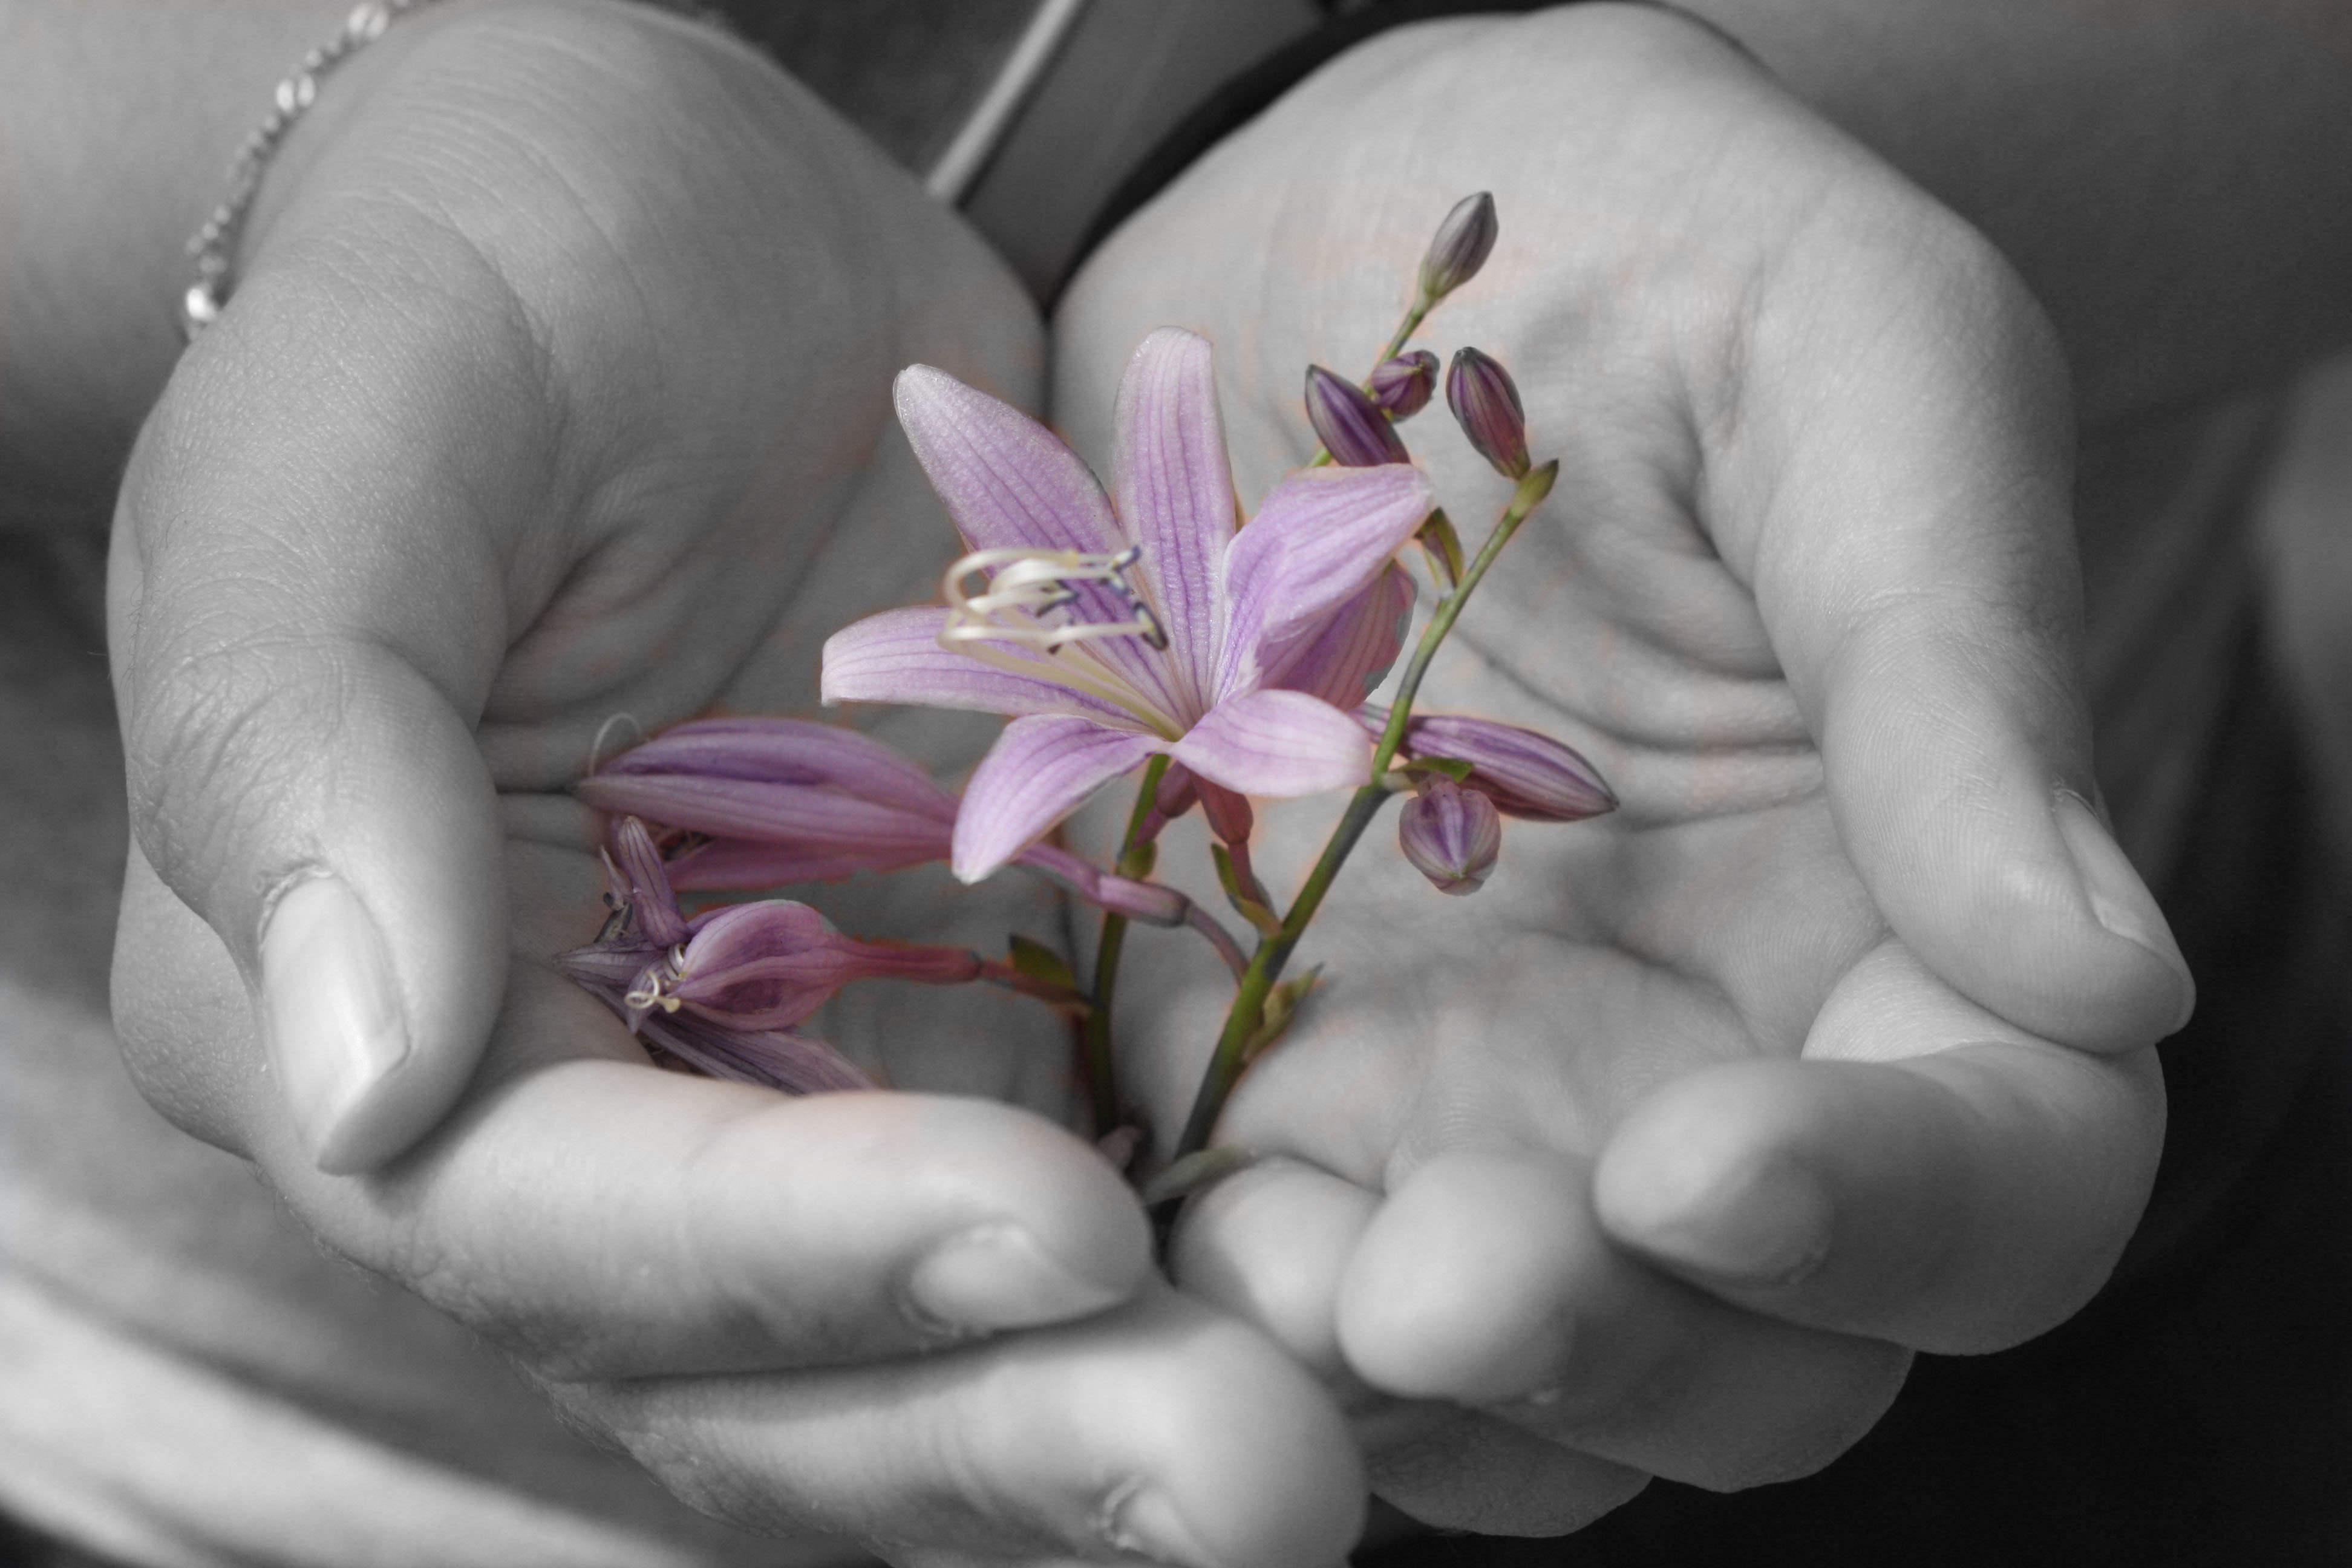 Grayscaled photo taken on mobile camera with color blocking to reveal purple flower in woman's hand